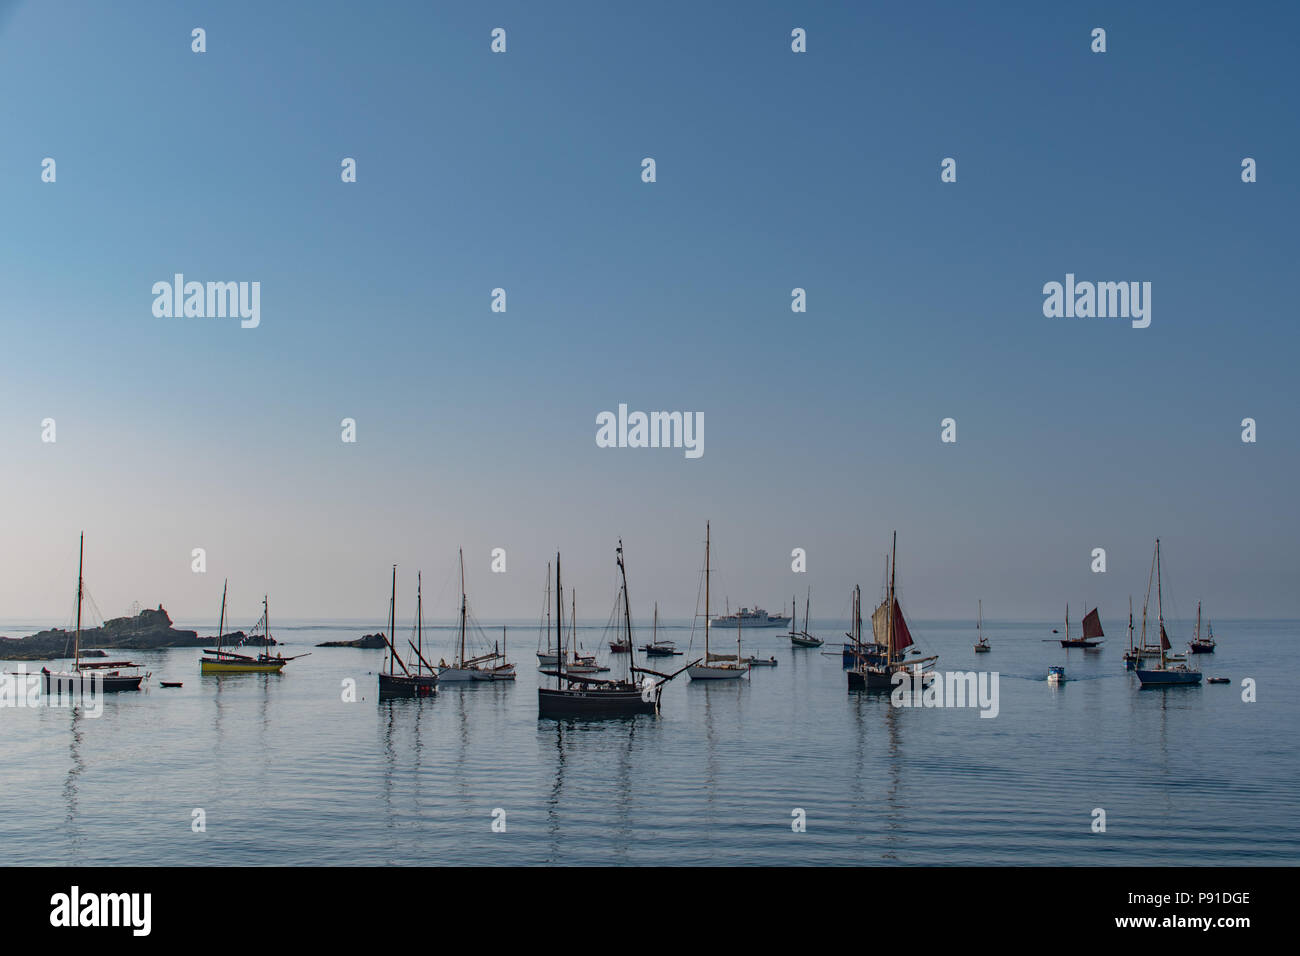 """Mousehole, Cornwall, UK. 14th July 2018. UK Weather. The sea was calm and it was hot early in the morning for these visting yachts to the Mousehole Sea Salts and Sail festival which is on over the weekend. Some even took to walking the """"plank"""" and jumping into the sea for an early morning dip. Credit: Simon Maycock/Alamy Live News Stock Photo"""